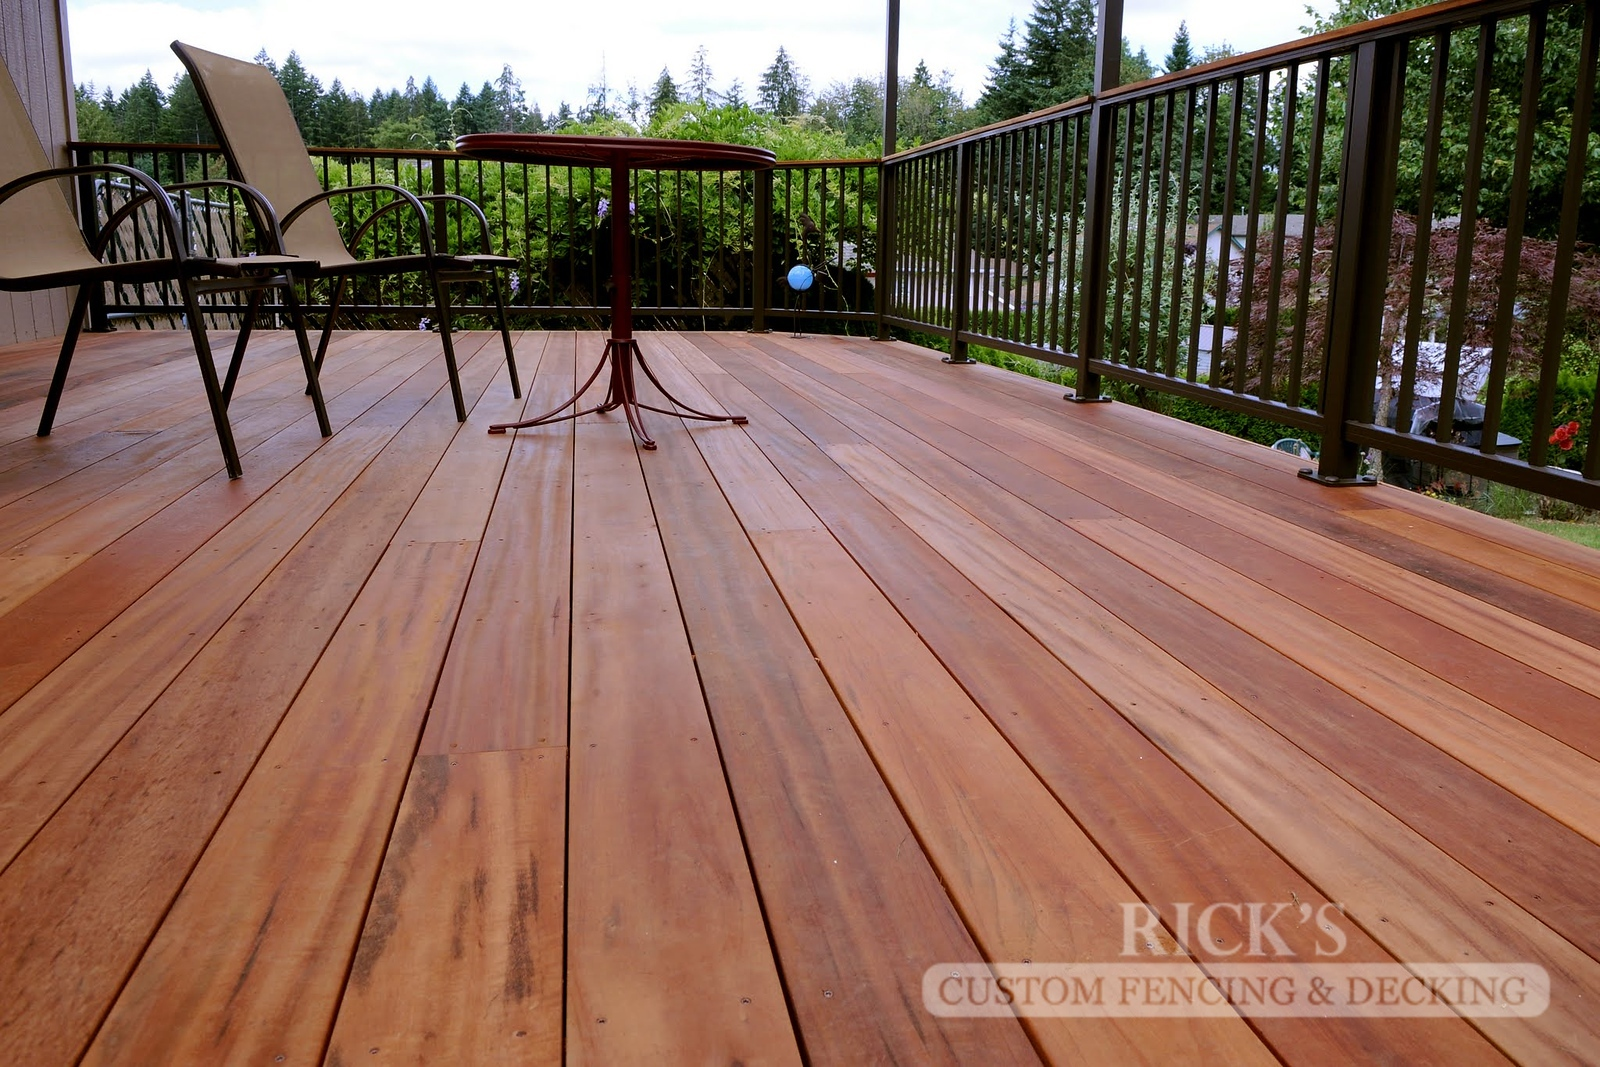 1109 - TigerWood Hardwood Decking